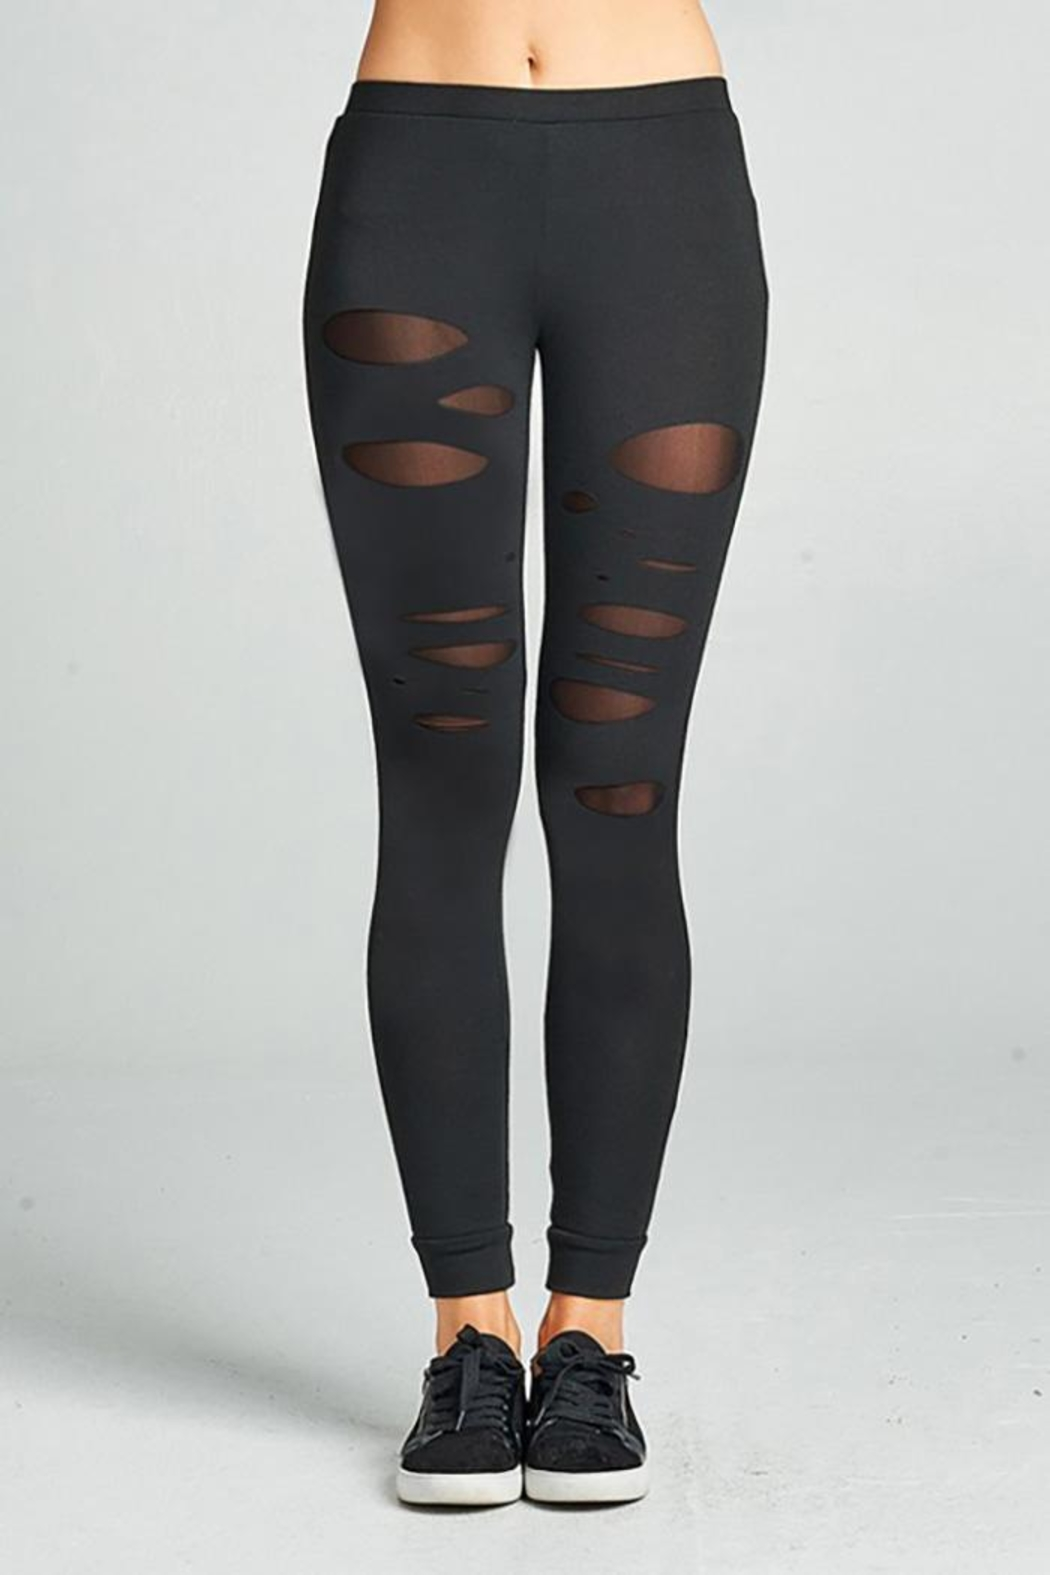 0 styleholic Cotton Jersey Leggings - Front Cropped Image